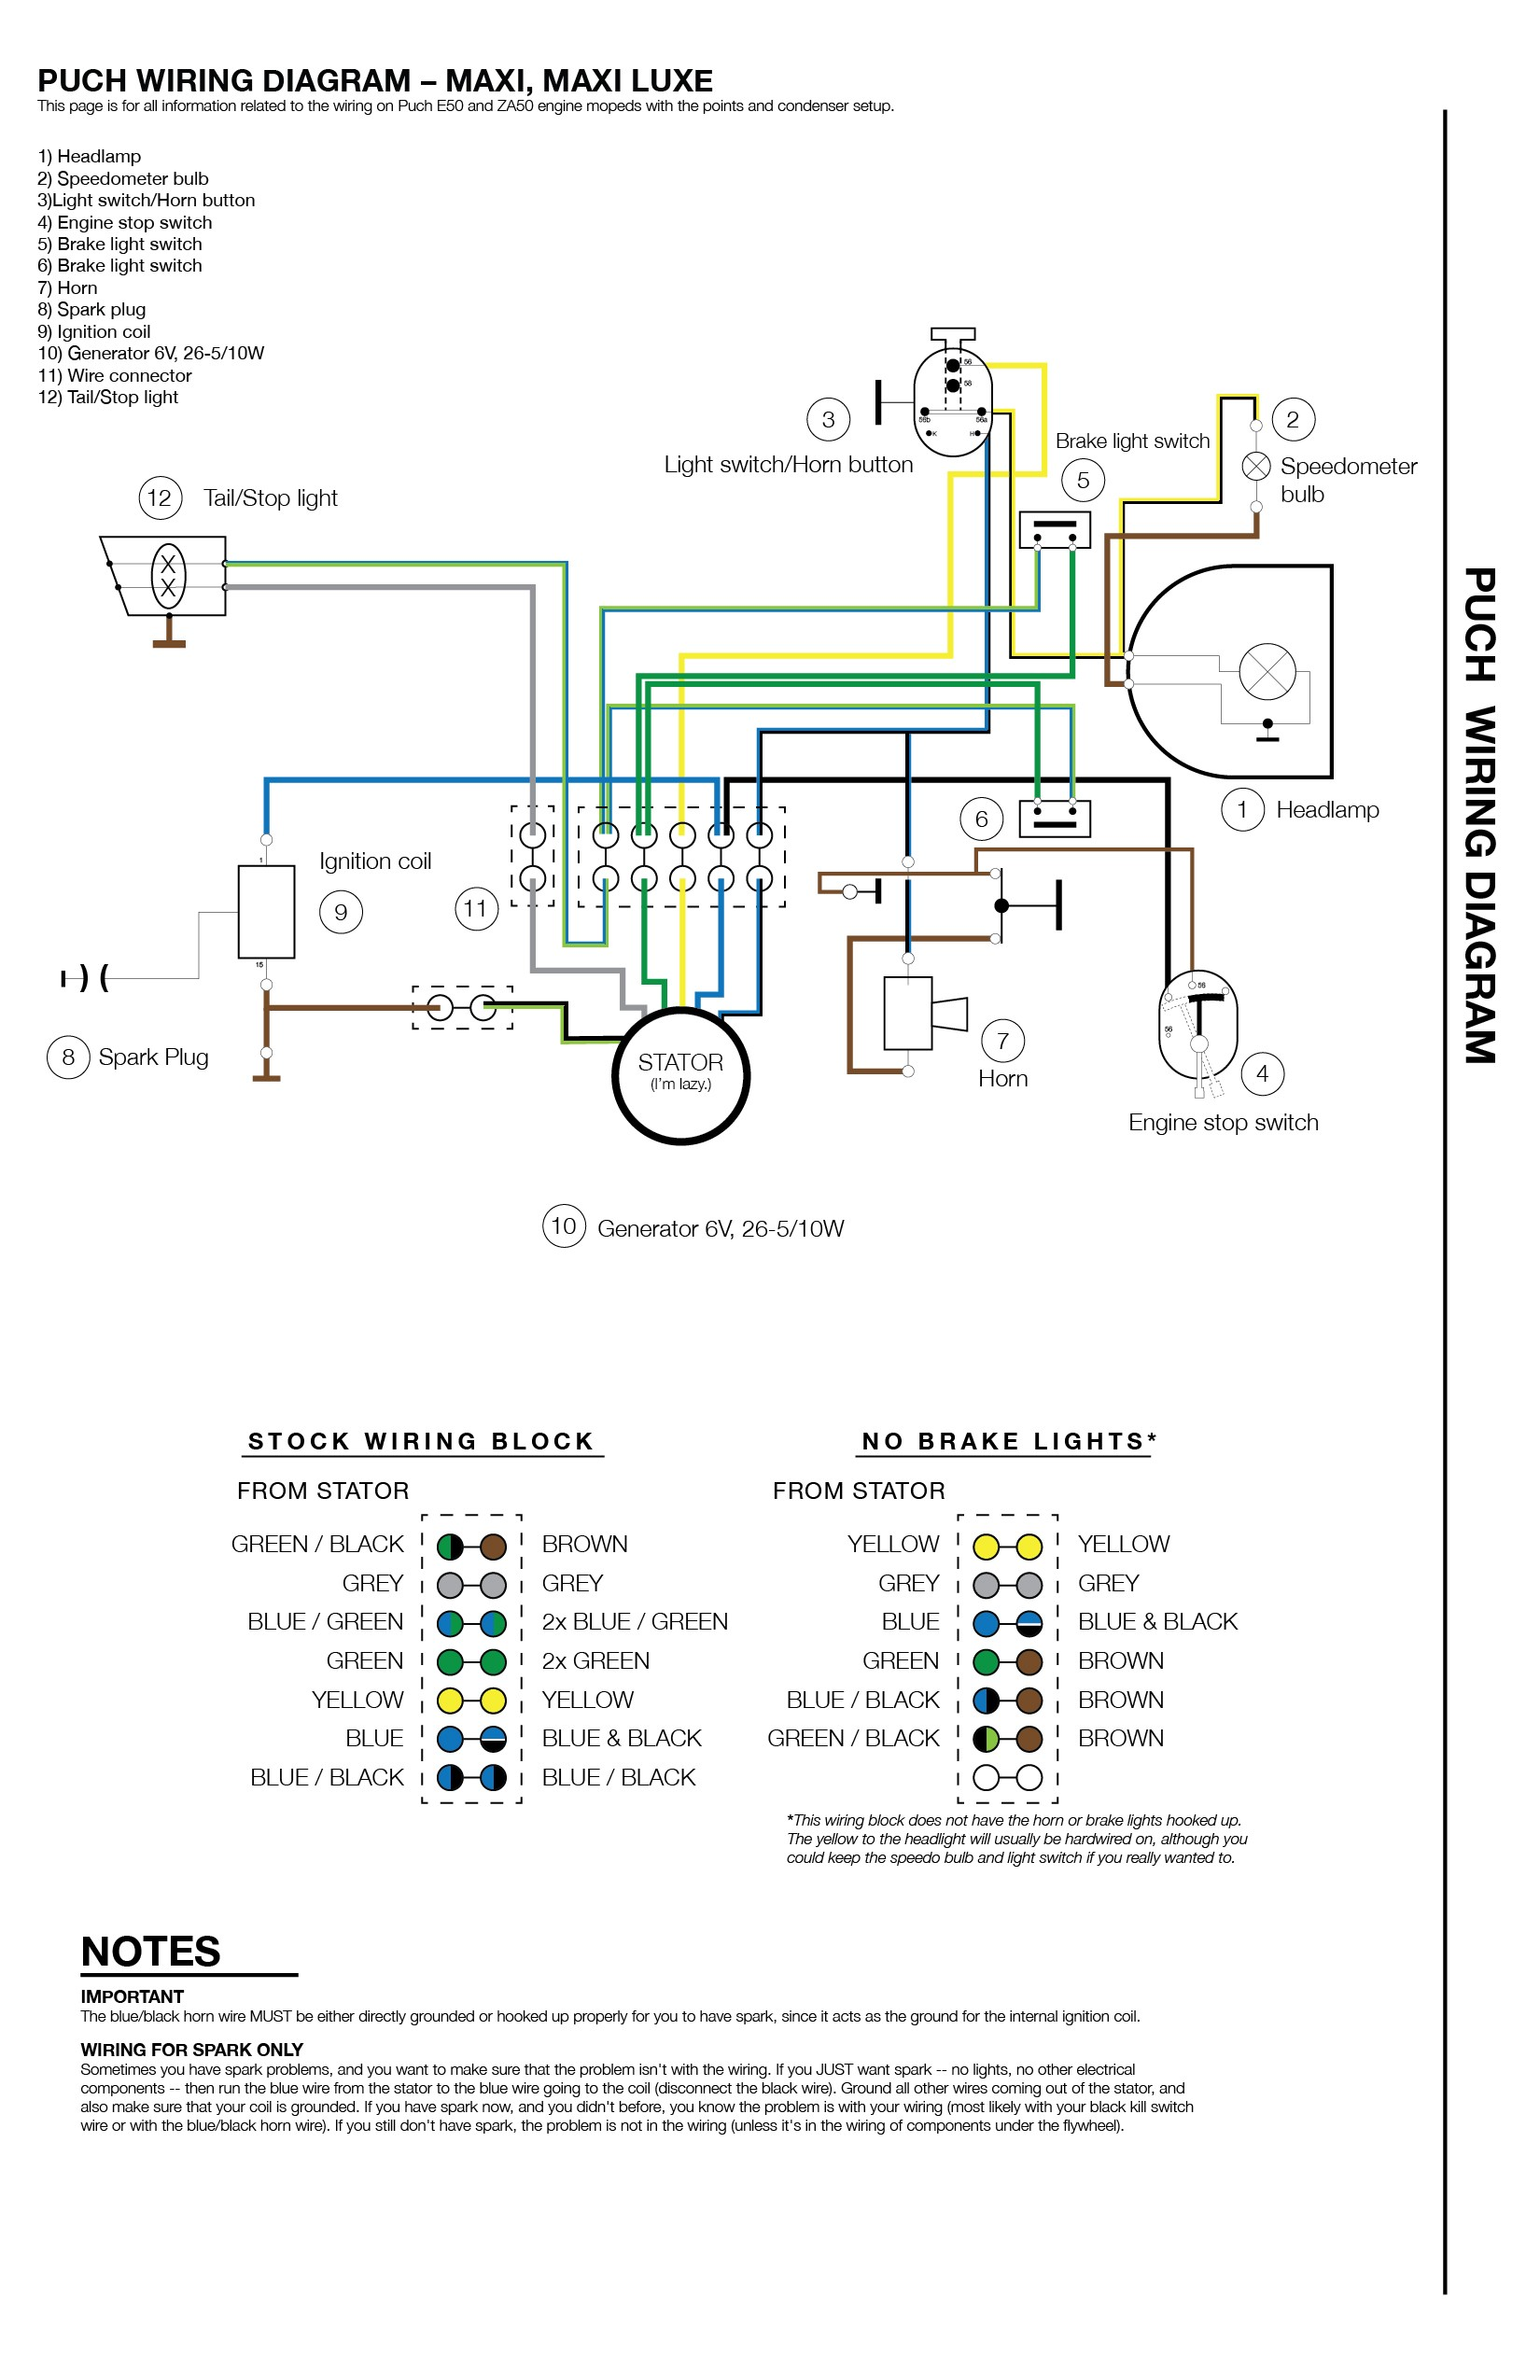 40 Pin Cdi Wiring Diagram   Two Light Wiring Diagram T40   astrany ...